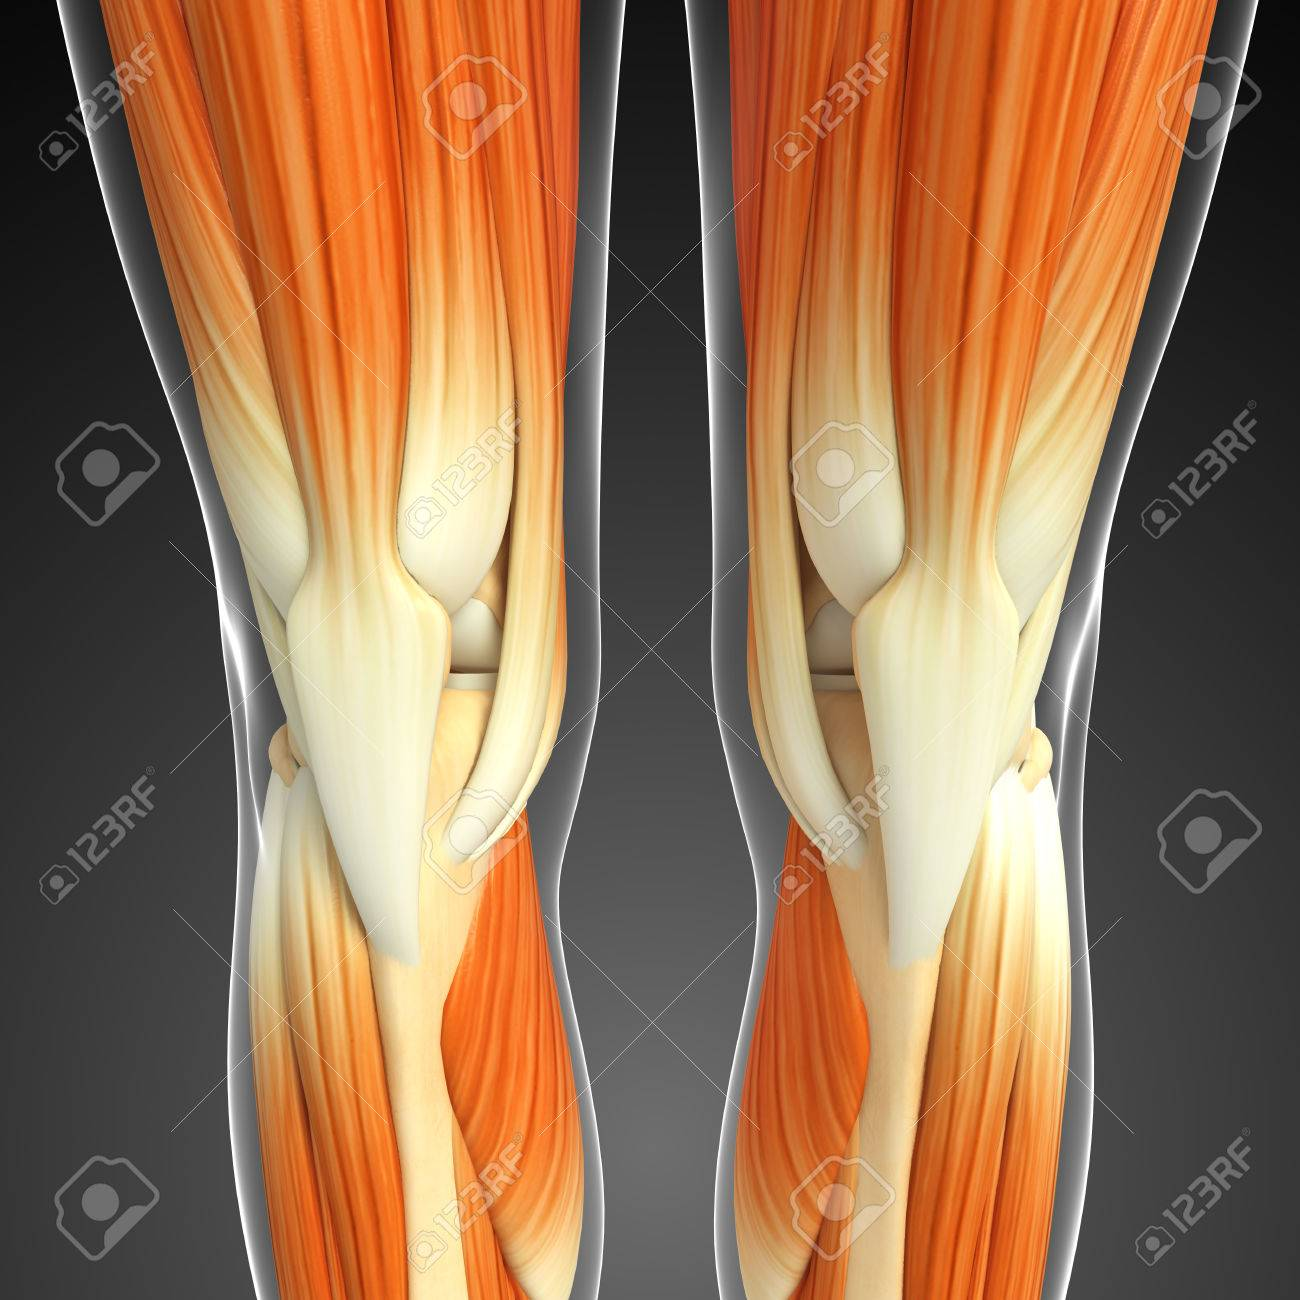 3d Rendered Illustration Of Knee Muscles Anatomy Stock Photo